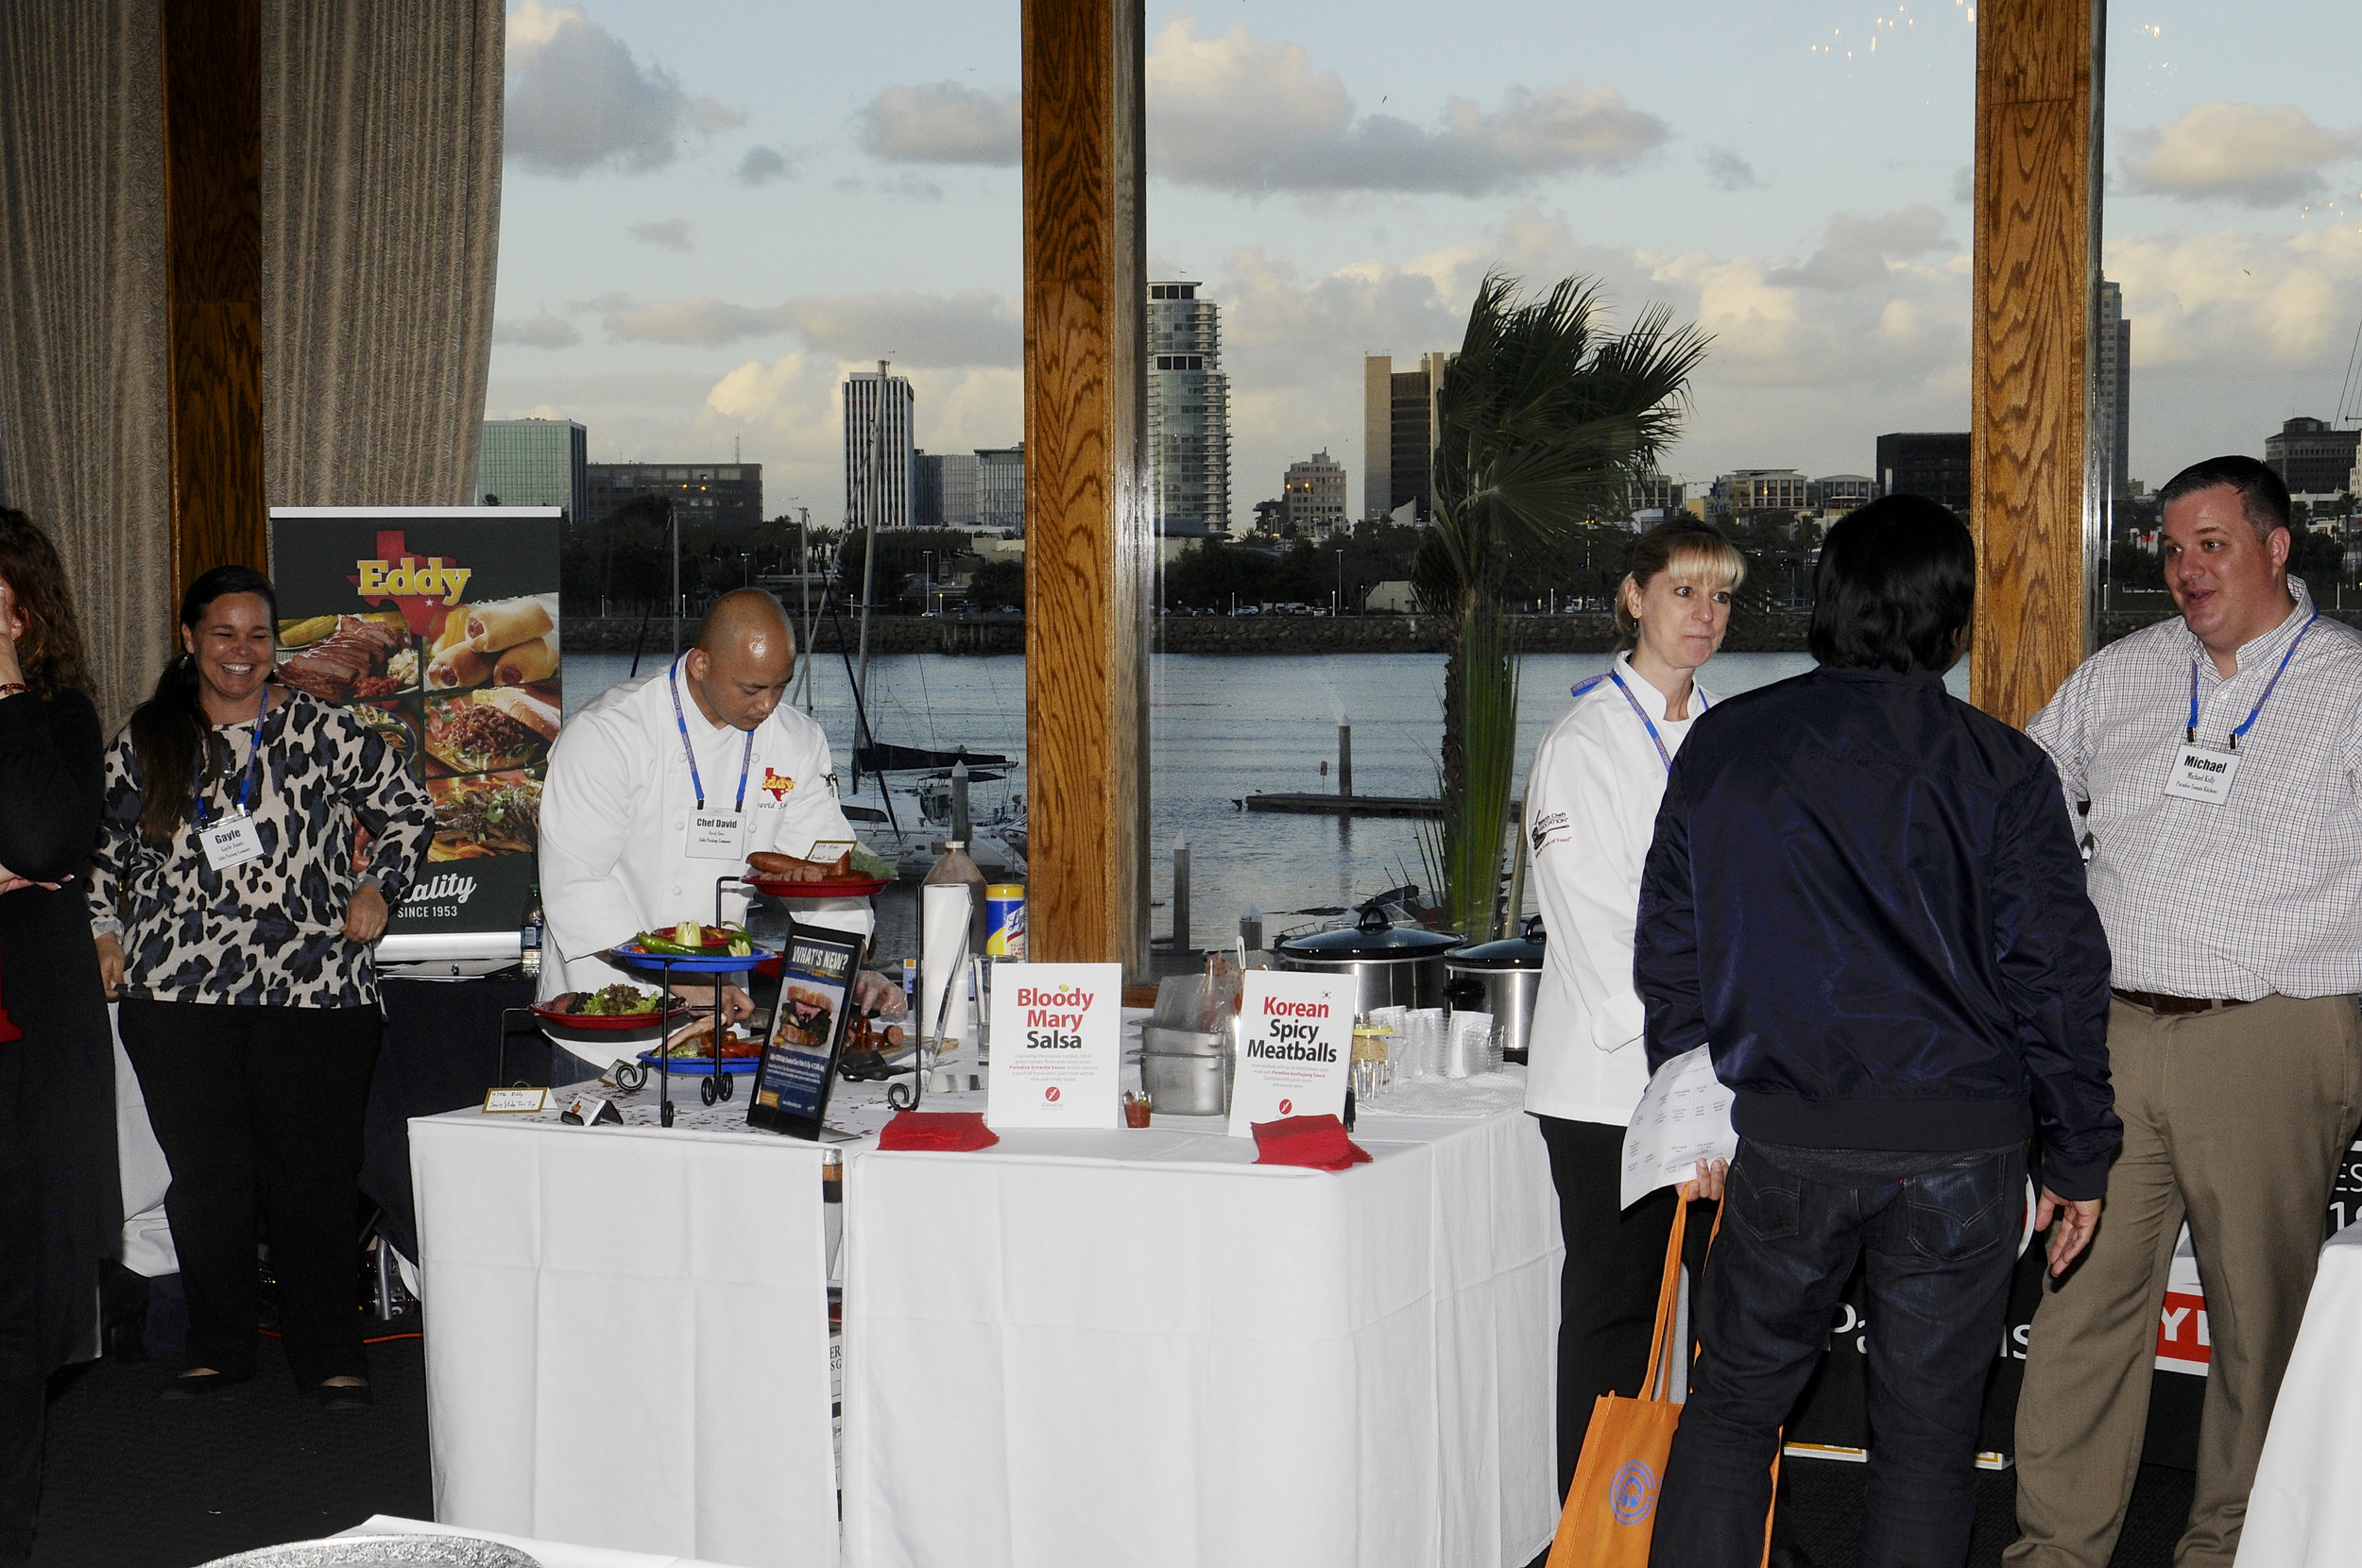 075 Market Vision Event at The Reef in Long Beach 02-05-19.jpg